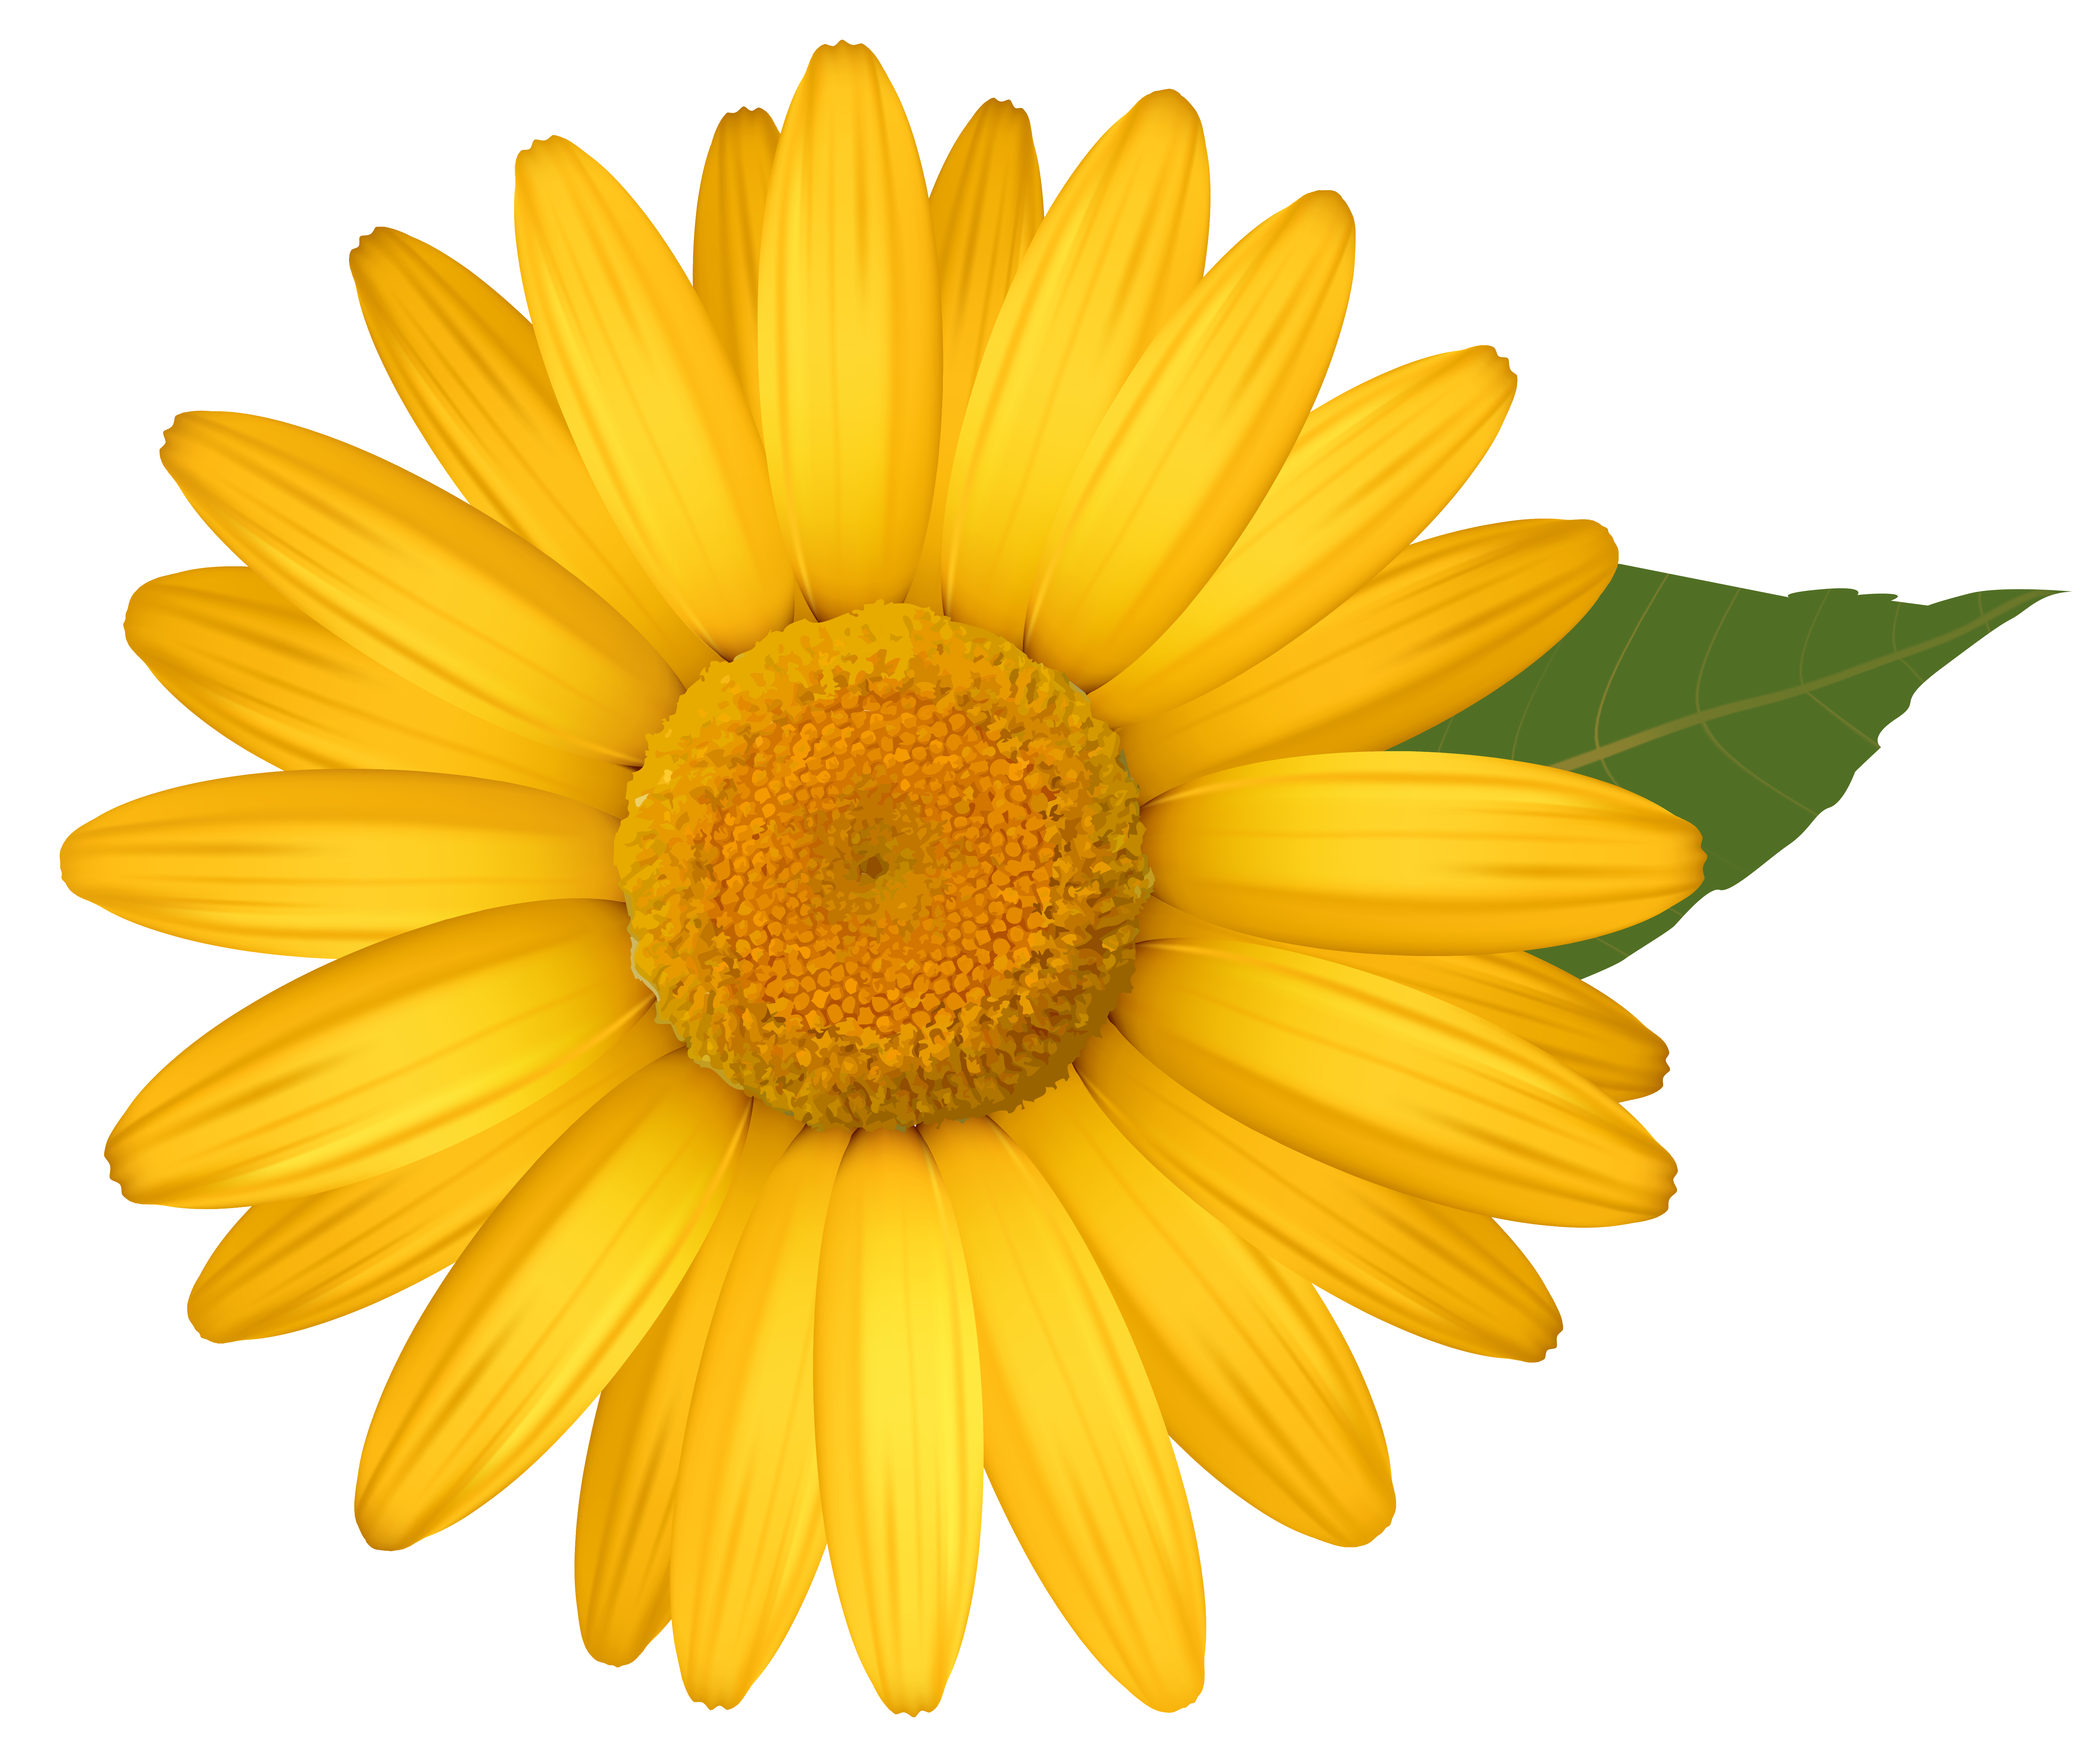 Yellow daisies clipart 20 free Cliparts | Download images ...